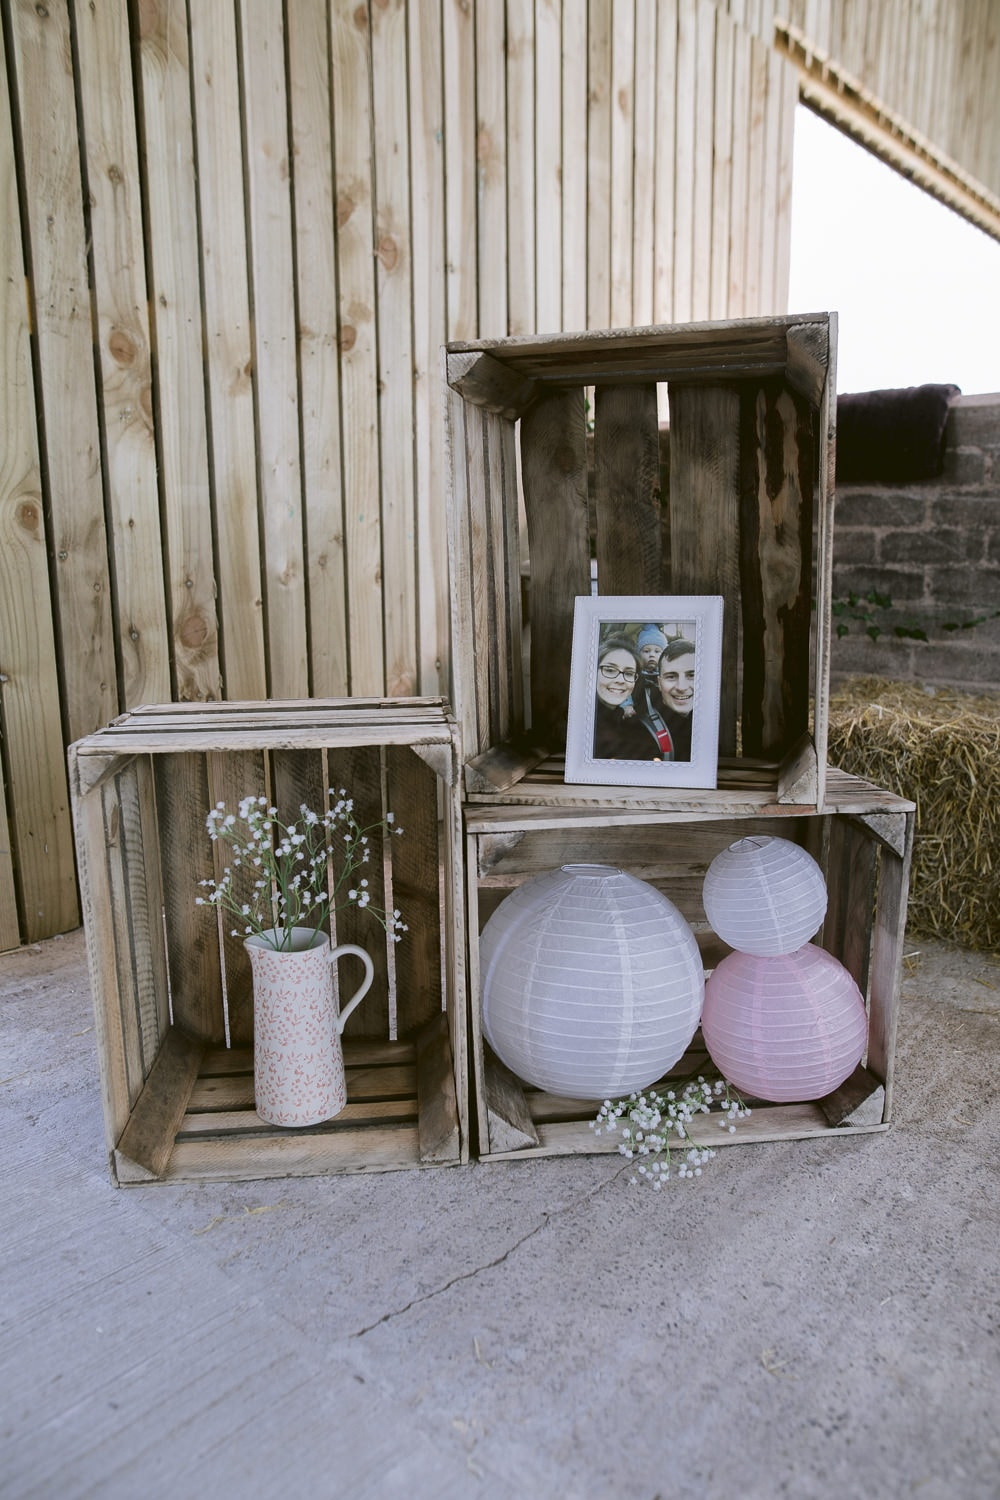 Barn Crates with Decorative Flowers and Photo Frame